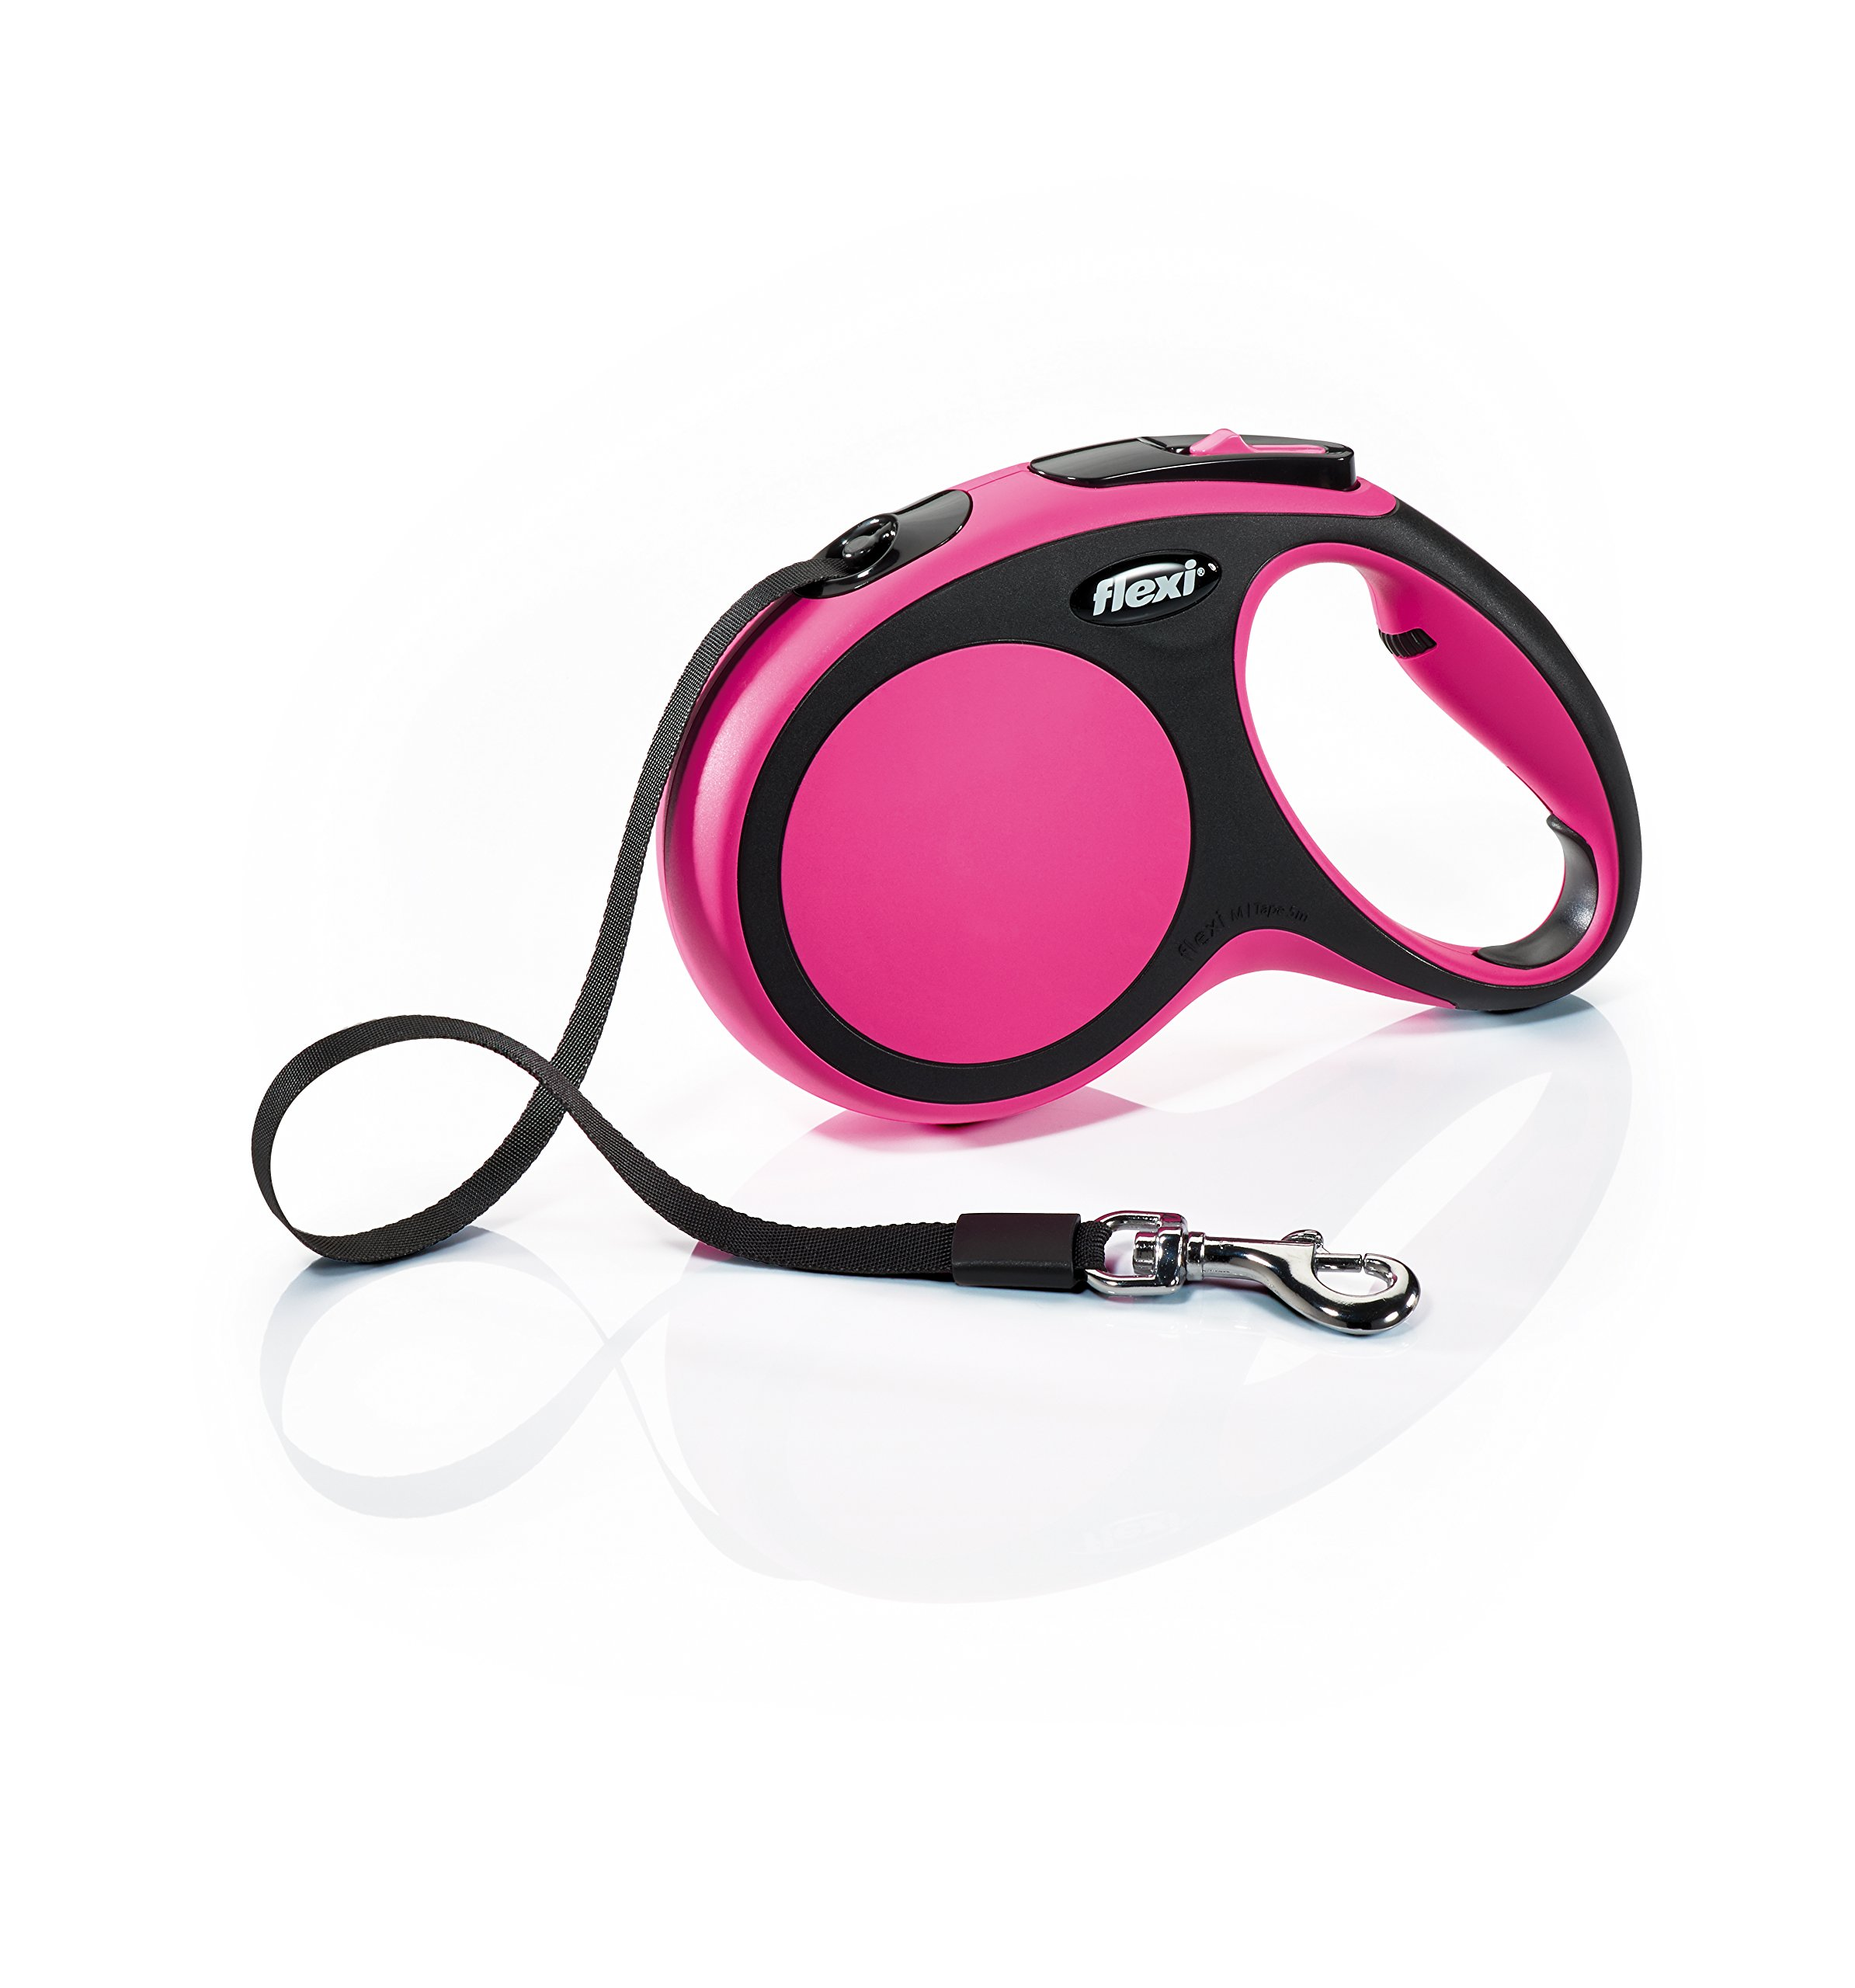 Flexi New Comfort Retractable Dog Leash (Tape), 16 ft, Medium, Pink by Flexi (Image #1)